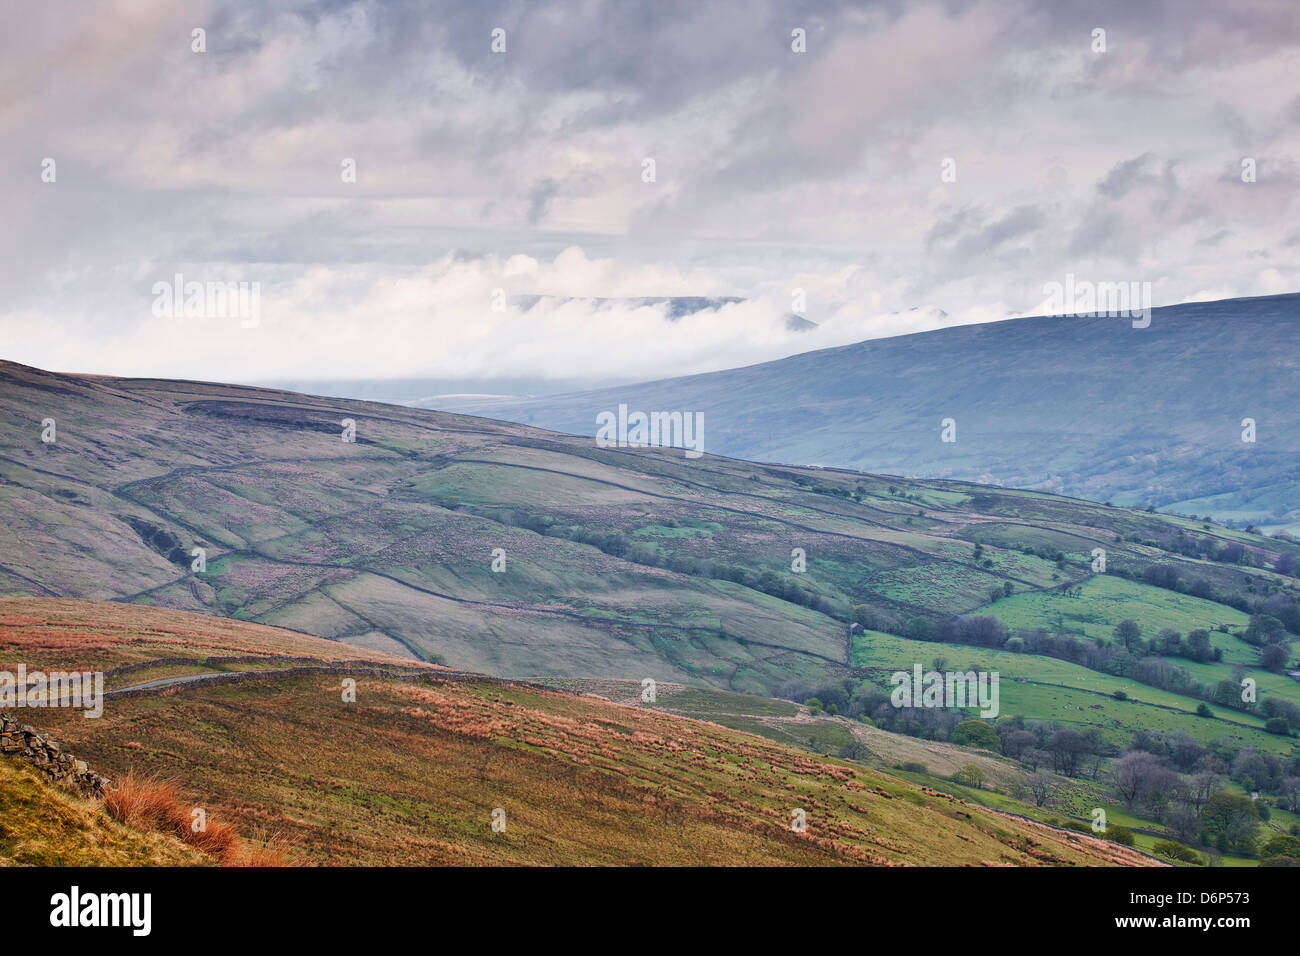 The rolling hills of the Yorkshire Dales National Park near Dentdale, Yorkshire, England, United Kingdom, Europe - Stock Image